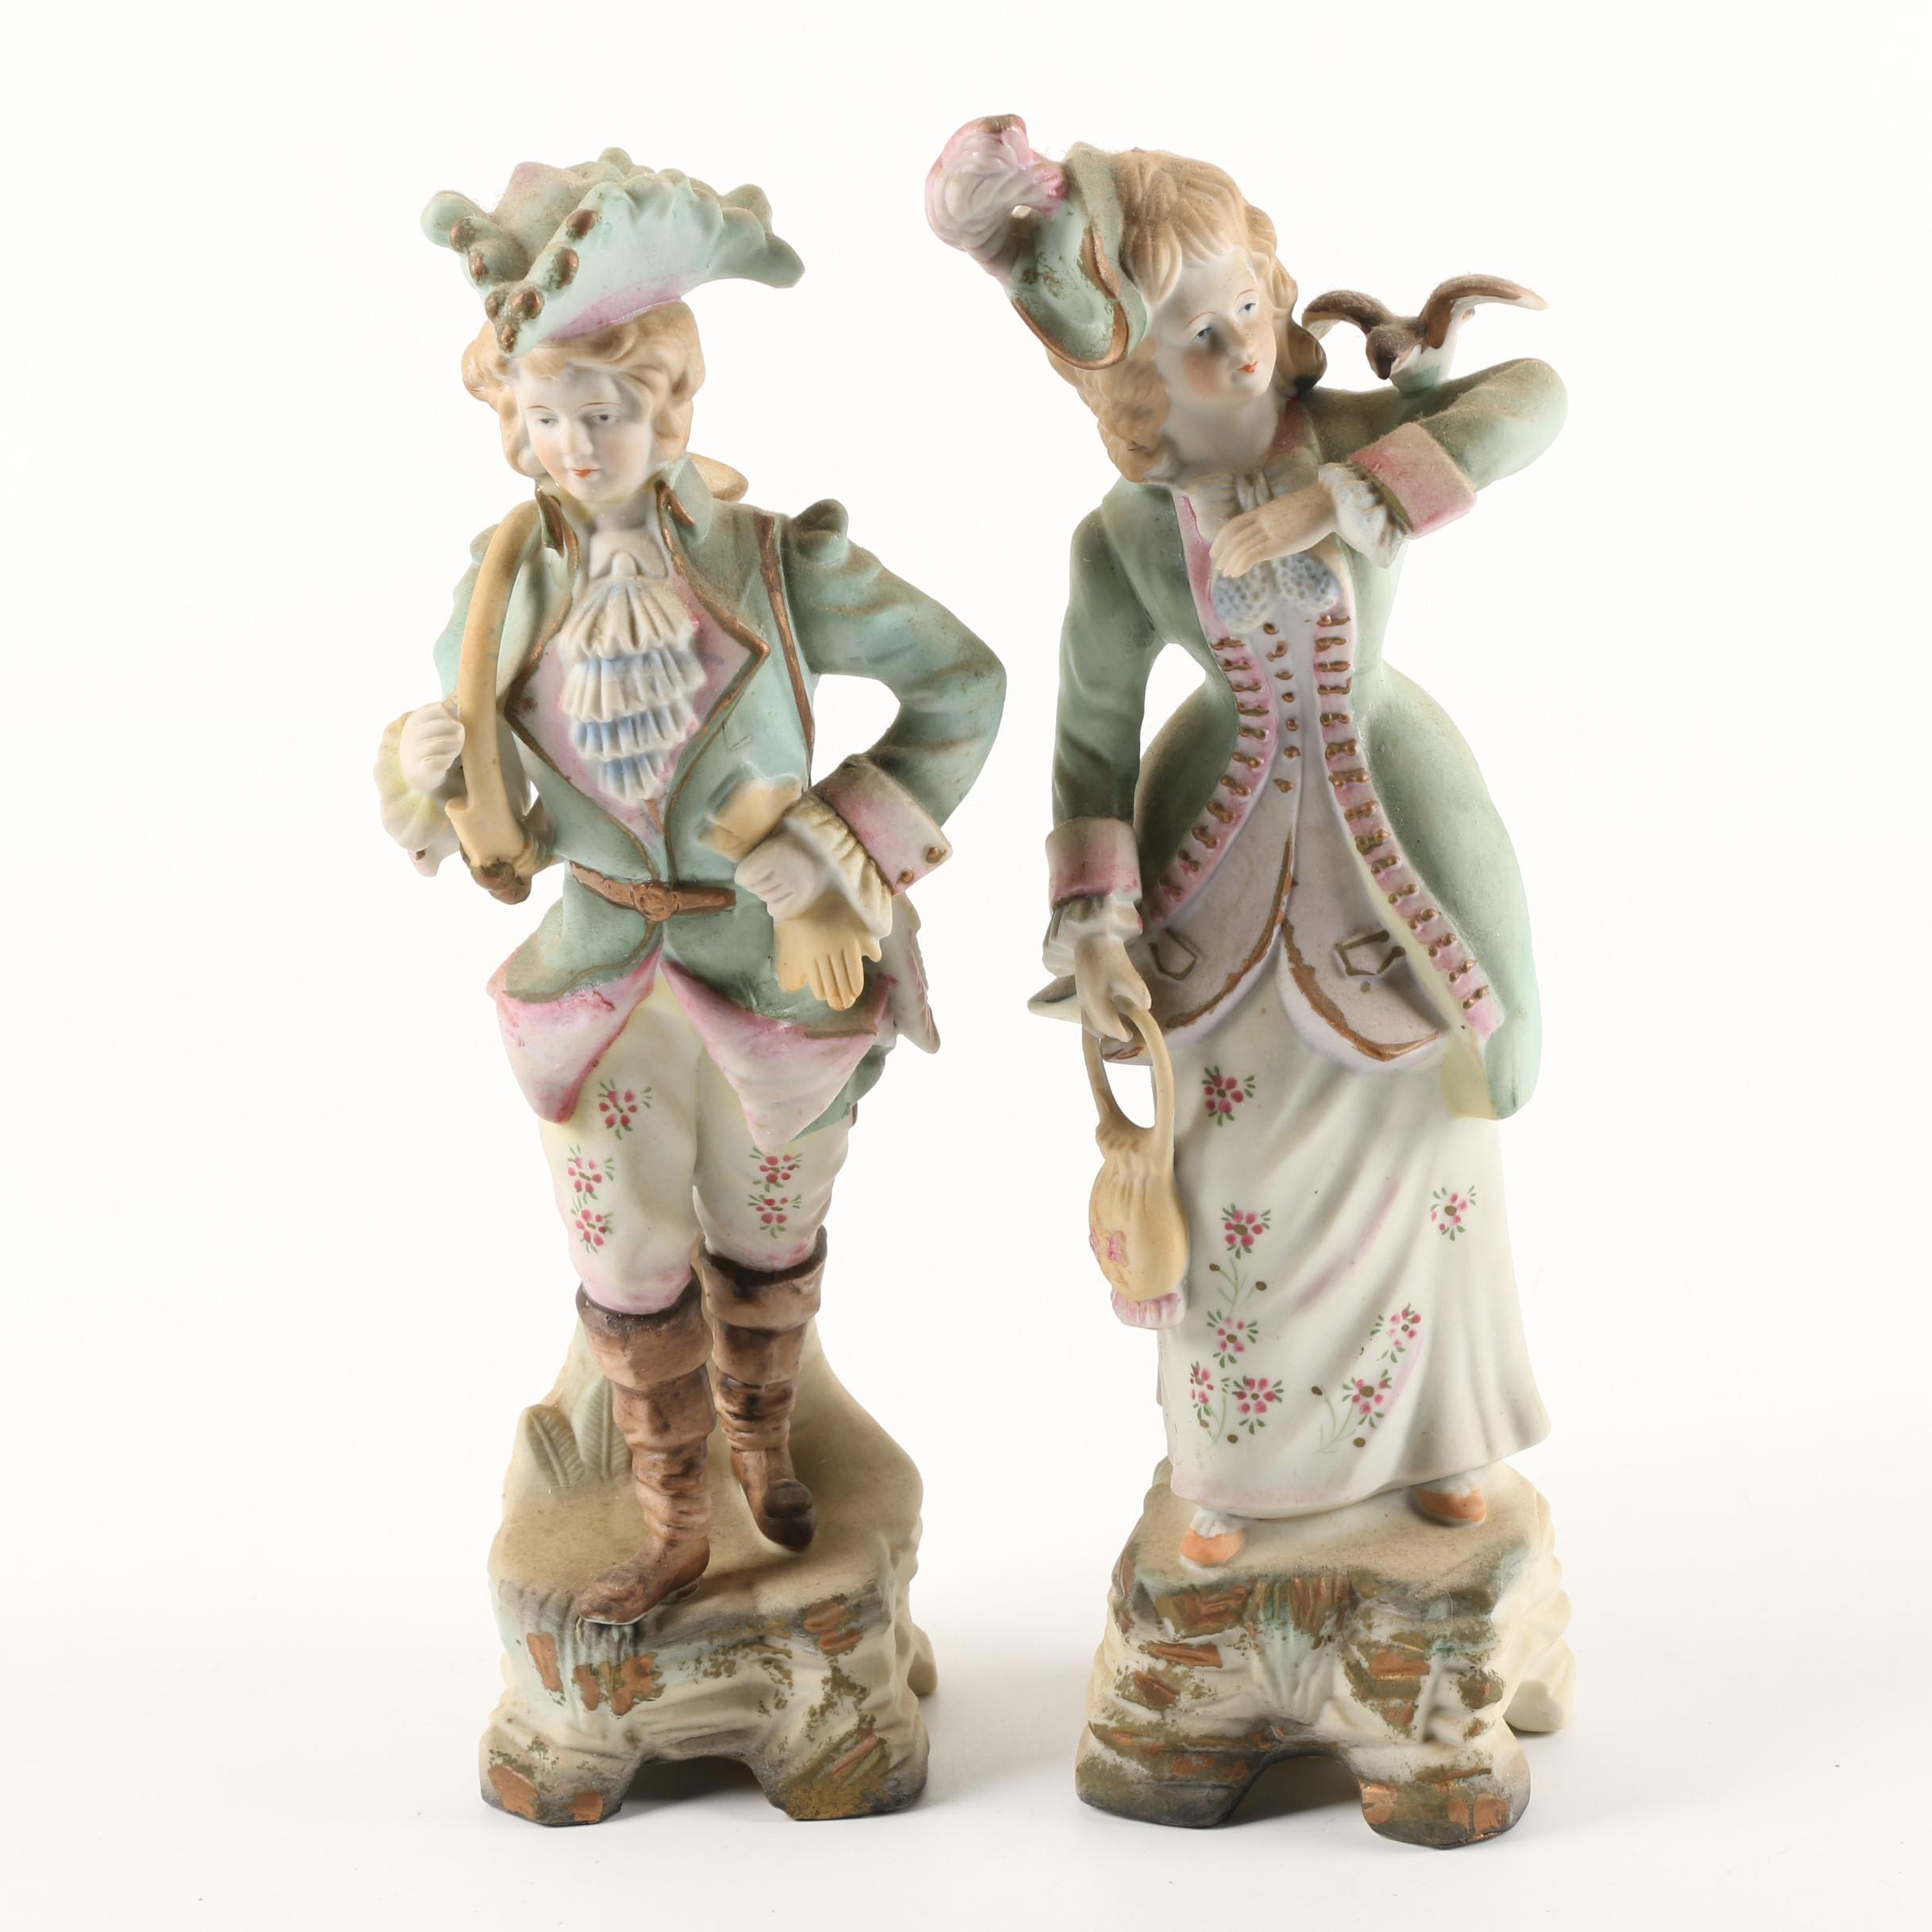 Betson Hand-Painted Bisque Porcelain Figurines Made in Occupied Japan